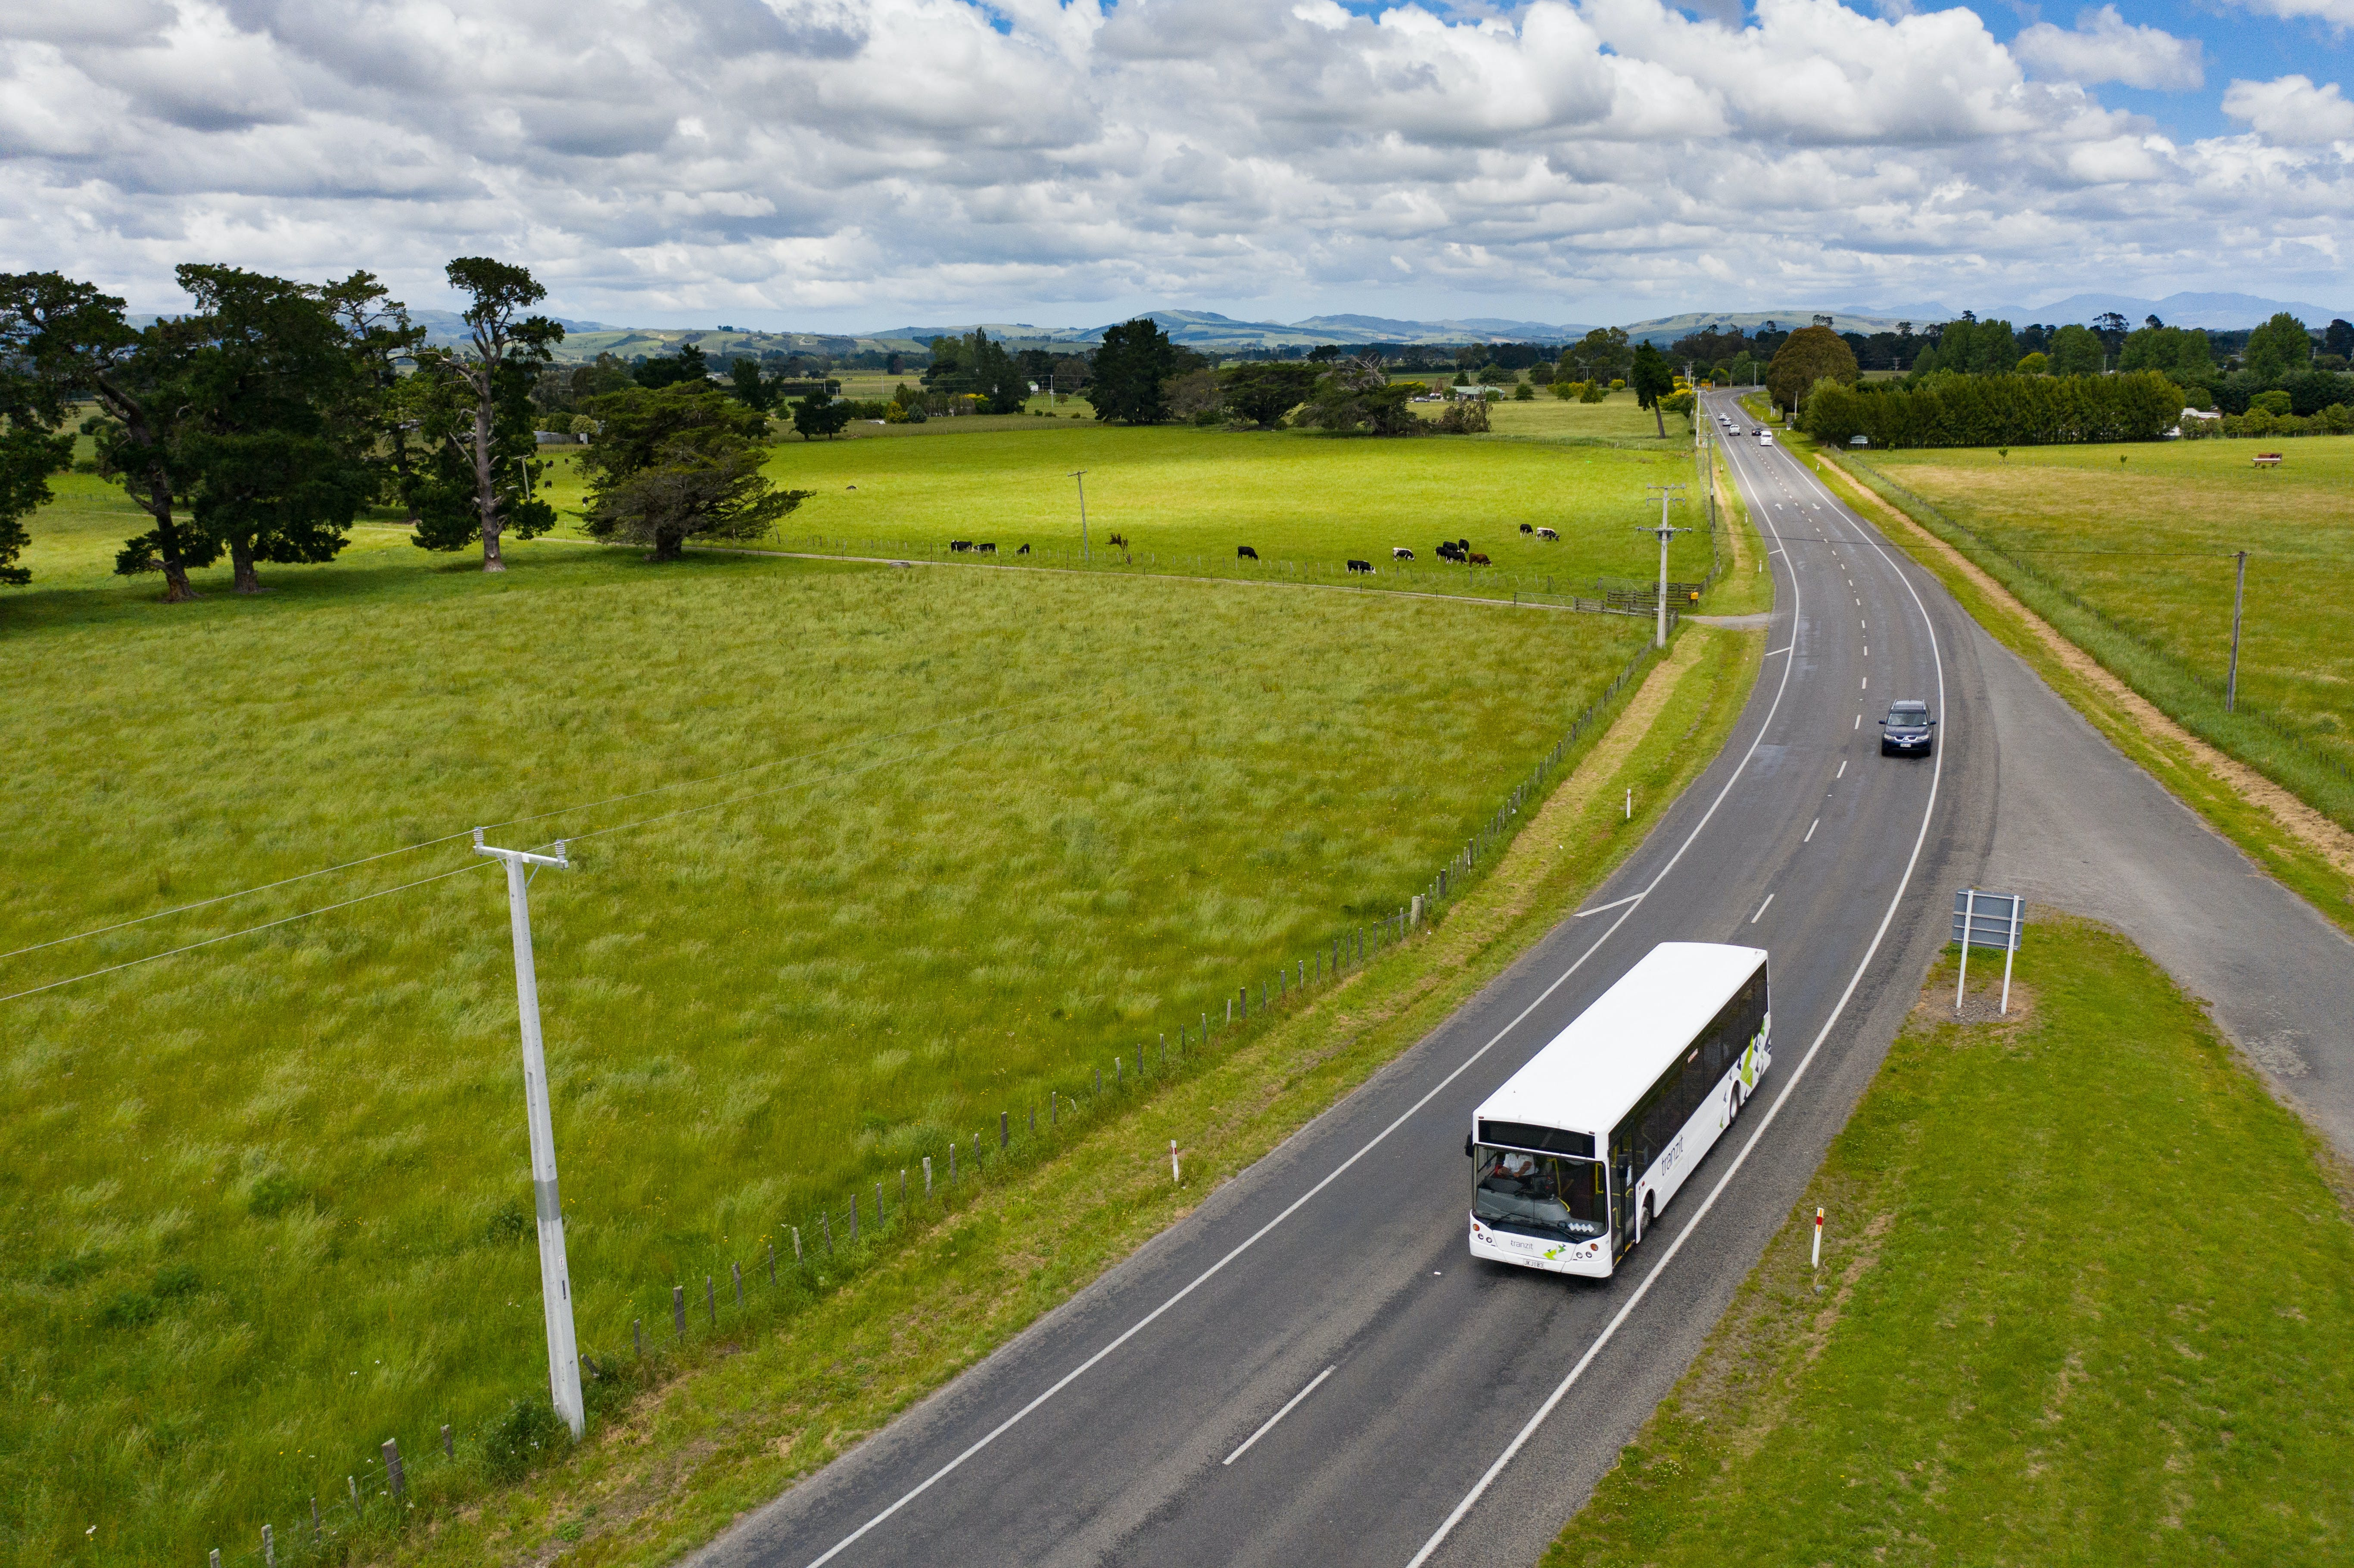 Wairarapa bus and car